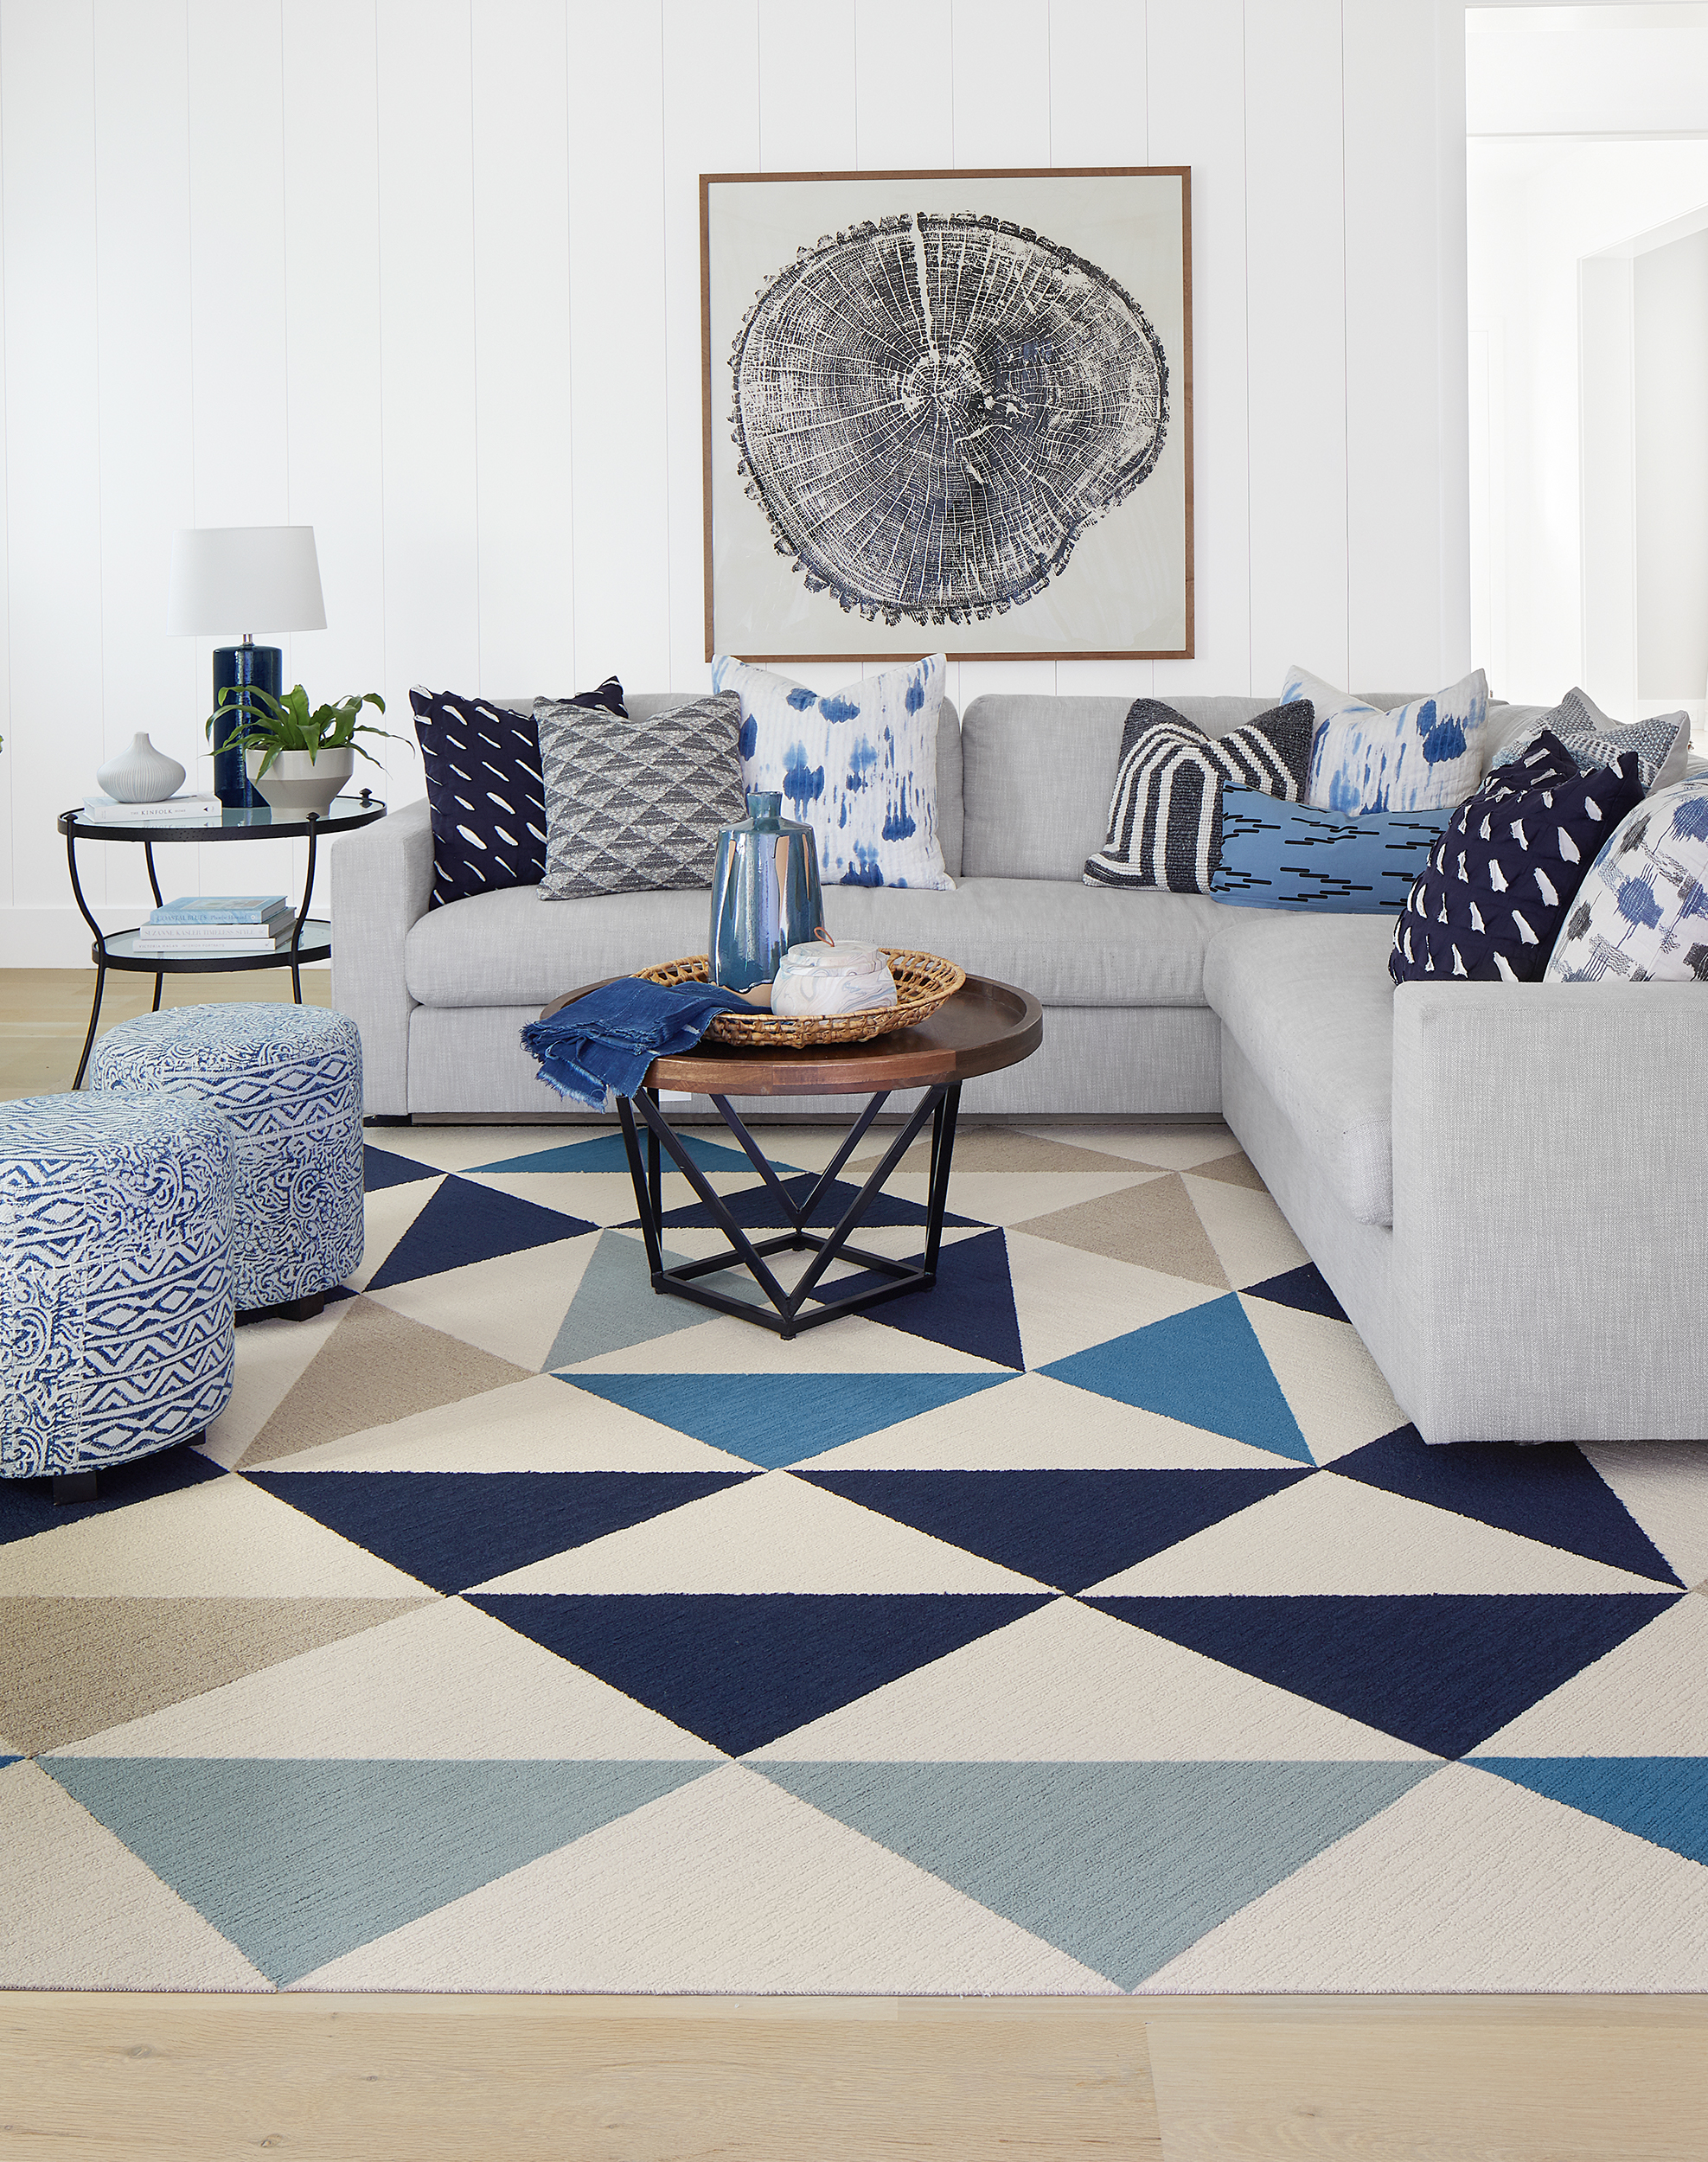 FLOR Made You Look area rug in Beige, Bone, Indigo, Tidal, and Flannel Blue, a white couch, blue printed ottomans, and metal tables.